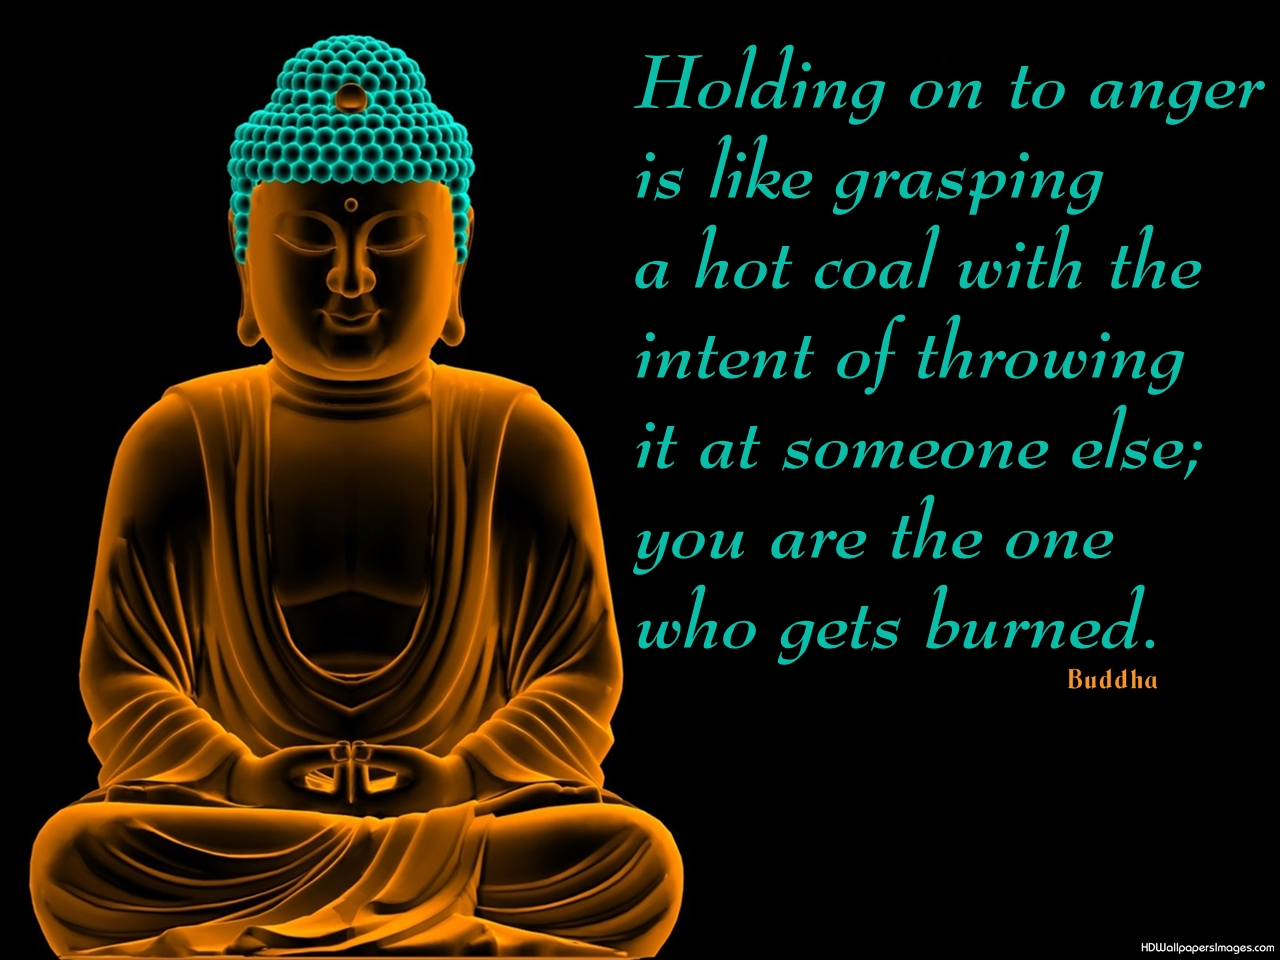 Lord Buddha Quotes. QuotesGram